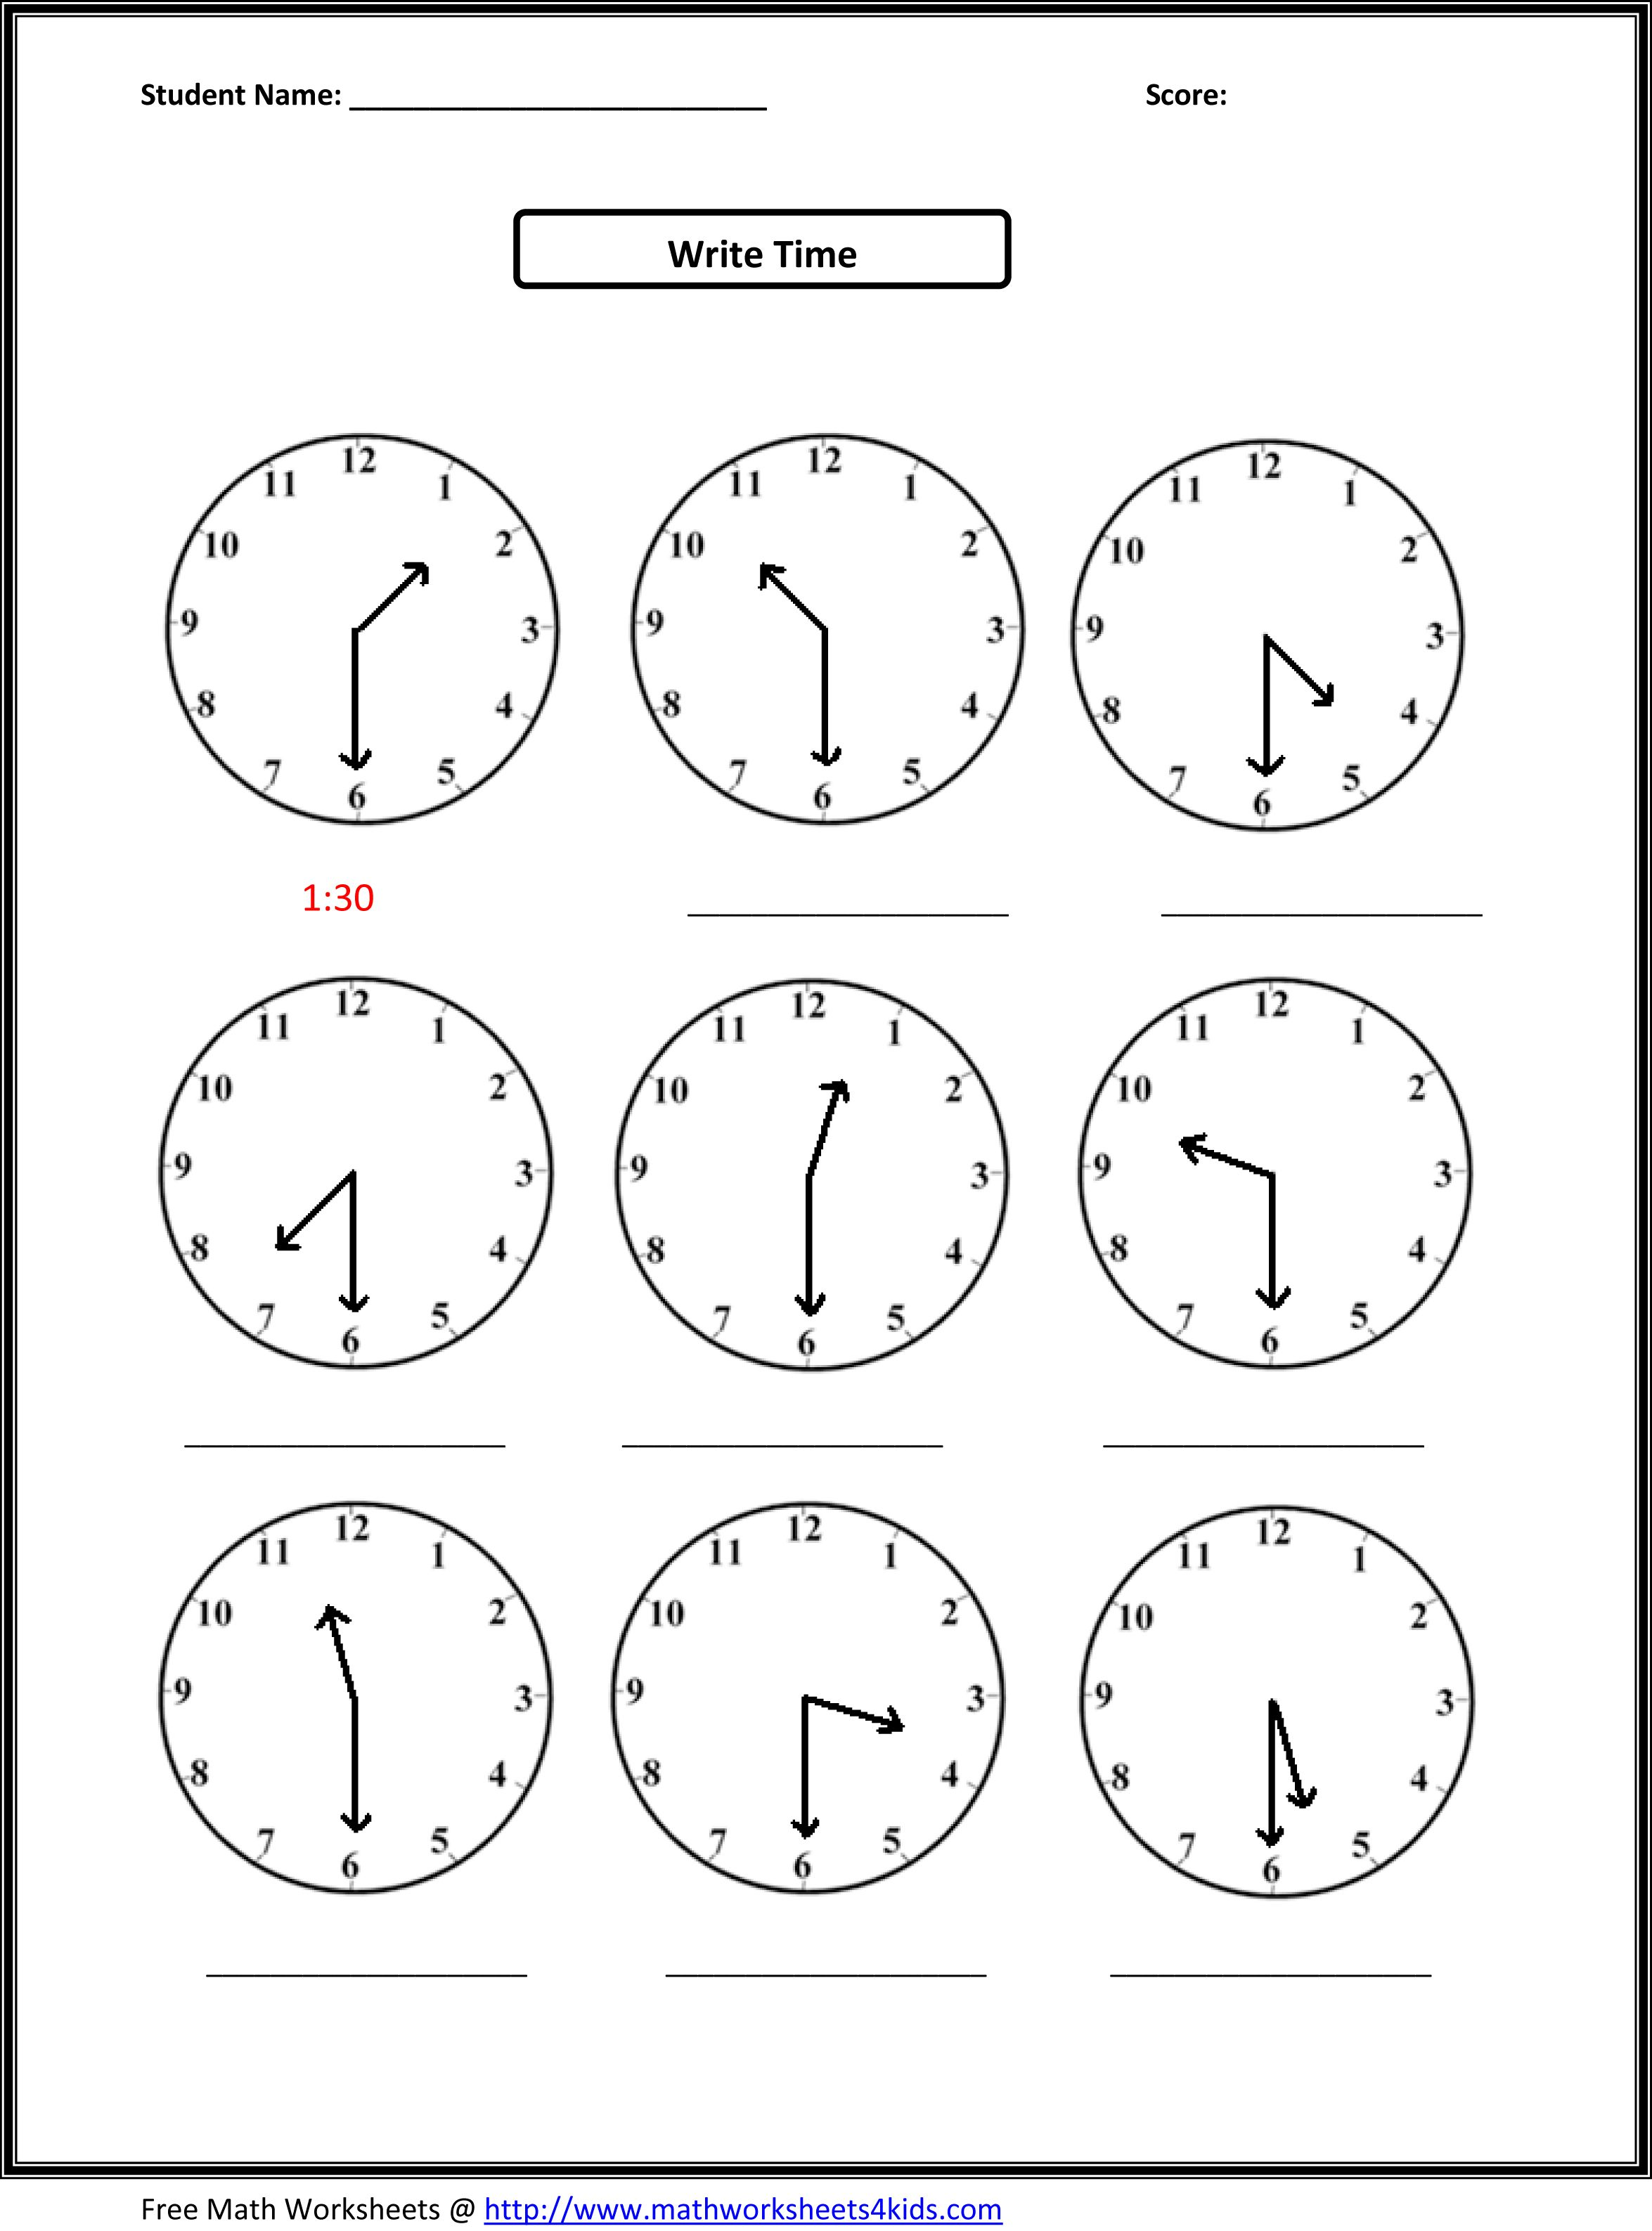 Weirdmailus  Unusual Worksheet On Time For Grade   Reocurent With Lovable Free Printable Telling Time Worksheets Nd Grade  Reocurent With Endearing Powers Of  Exponents Worksheets Also First Grade Math Facts Worksheets In Addition Mayan Numbers Worksheet And Th Grade Math Problems Worksheets As Well As Adverbs Worksheet Th Grade Additionally Personal Expense Worksheet From Reocurentcom With Weirdmailus  Lovable Worksheet On Time For Grade   Reocurent With Endearing Free Printable Telling Time Worksheets Nd Grade  Reocurent And Unusual Powers Of  Exponents Worksheets Also First Grade Math Facts Worksheets In Addition Mayan Numbers Worksheet From Reocurentcom